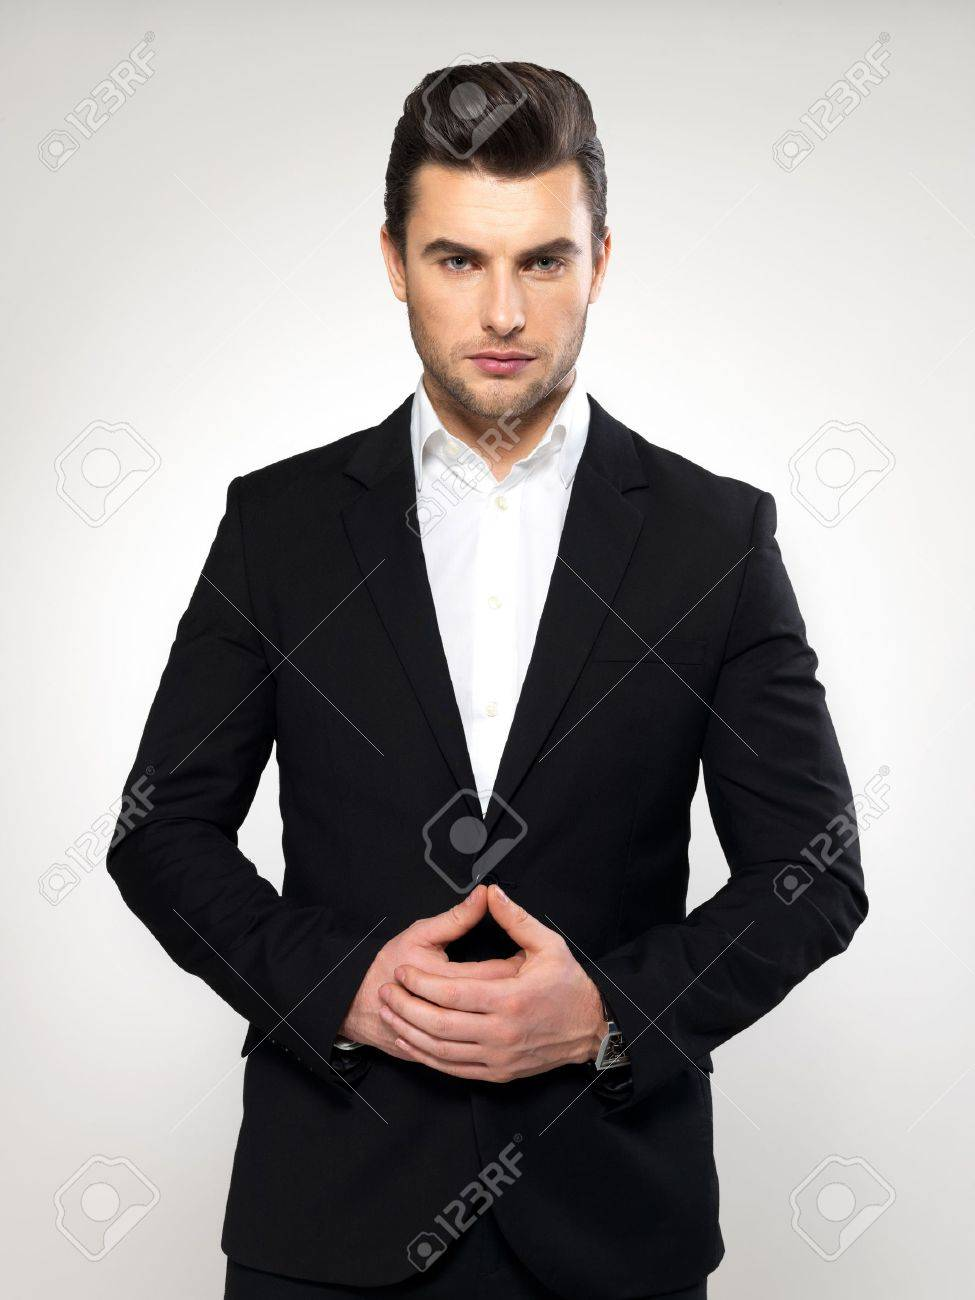 Fashion Young Businessman Black Suit Casual Poses At Studio Stock